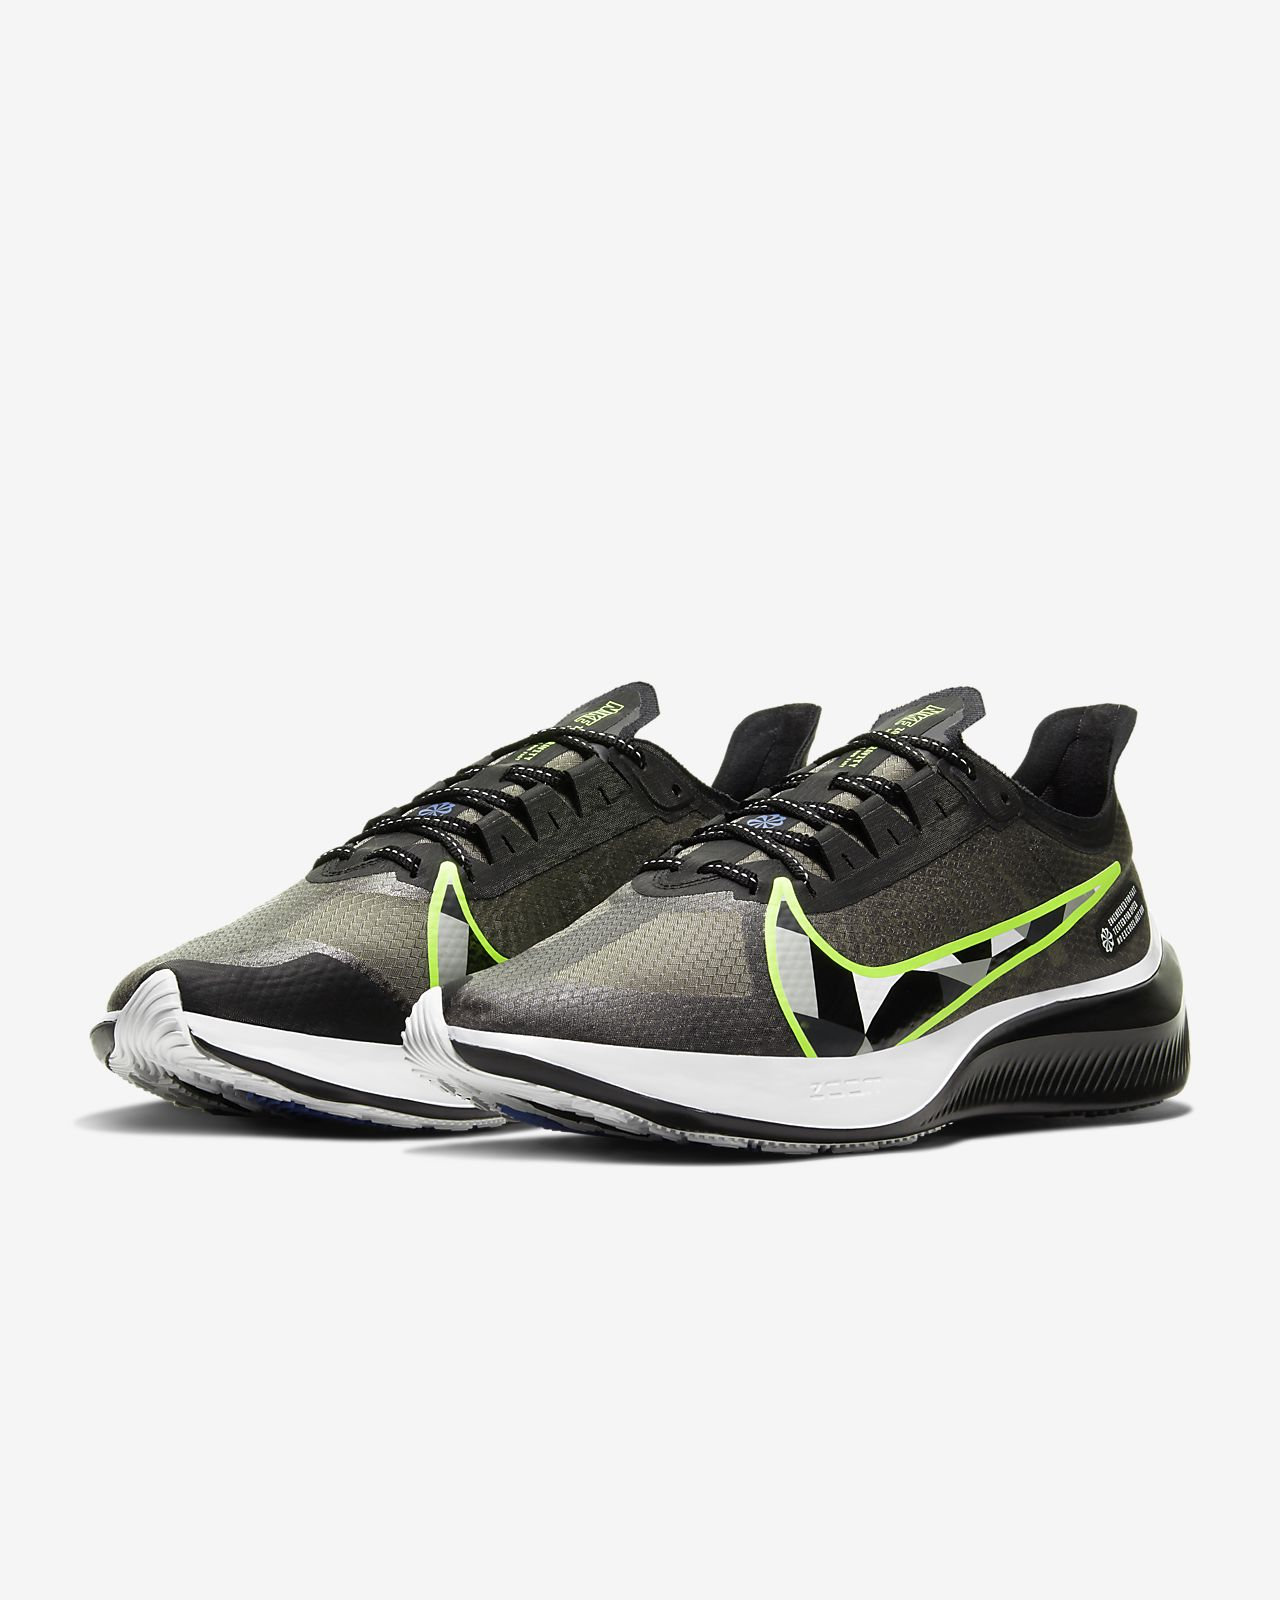 de Gravity running Homme Nike Zoom Chaussure pour qSGMVUzp